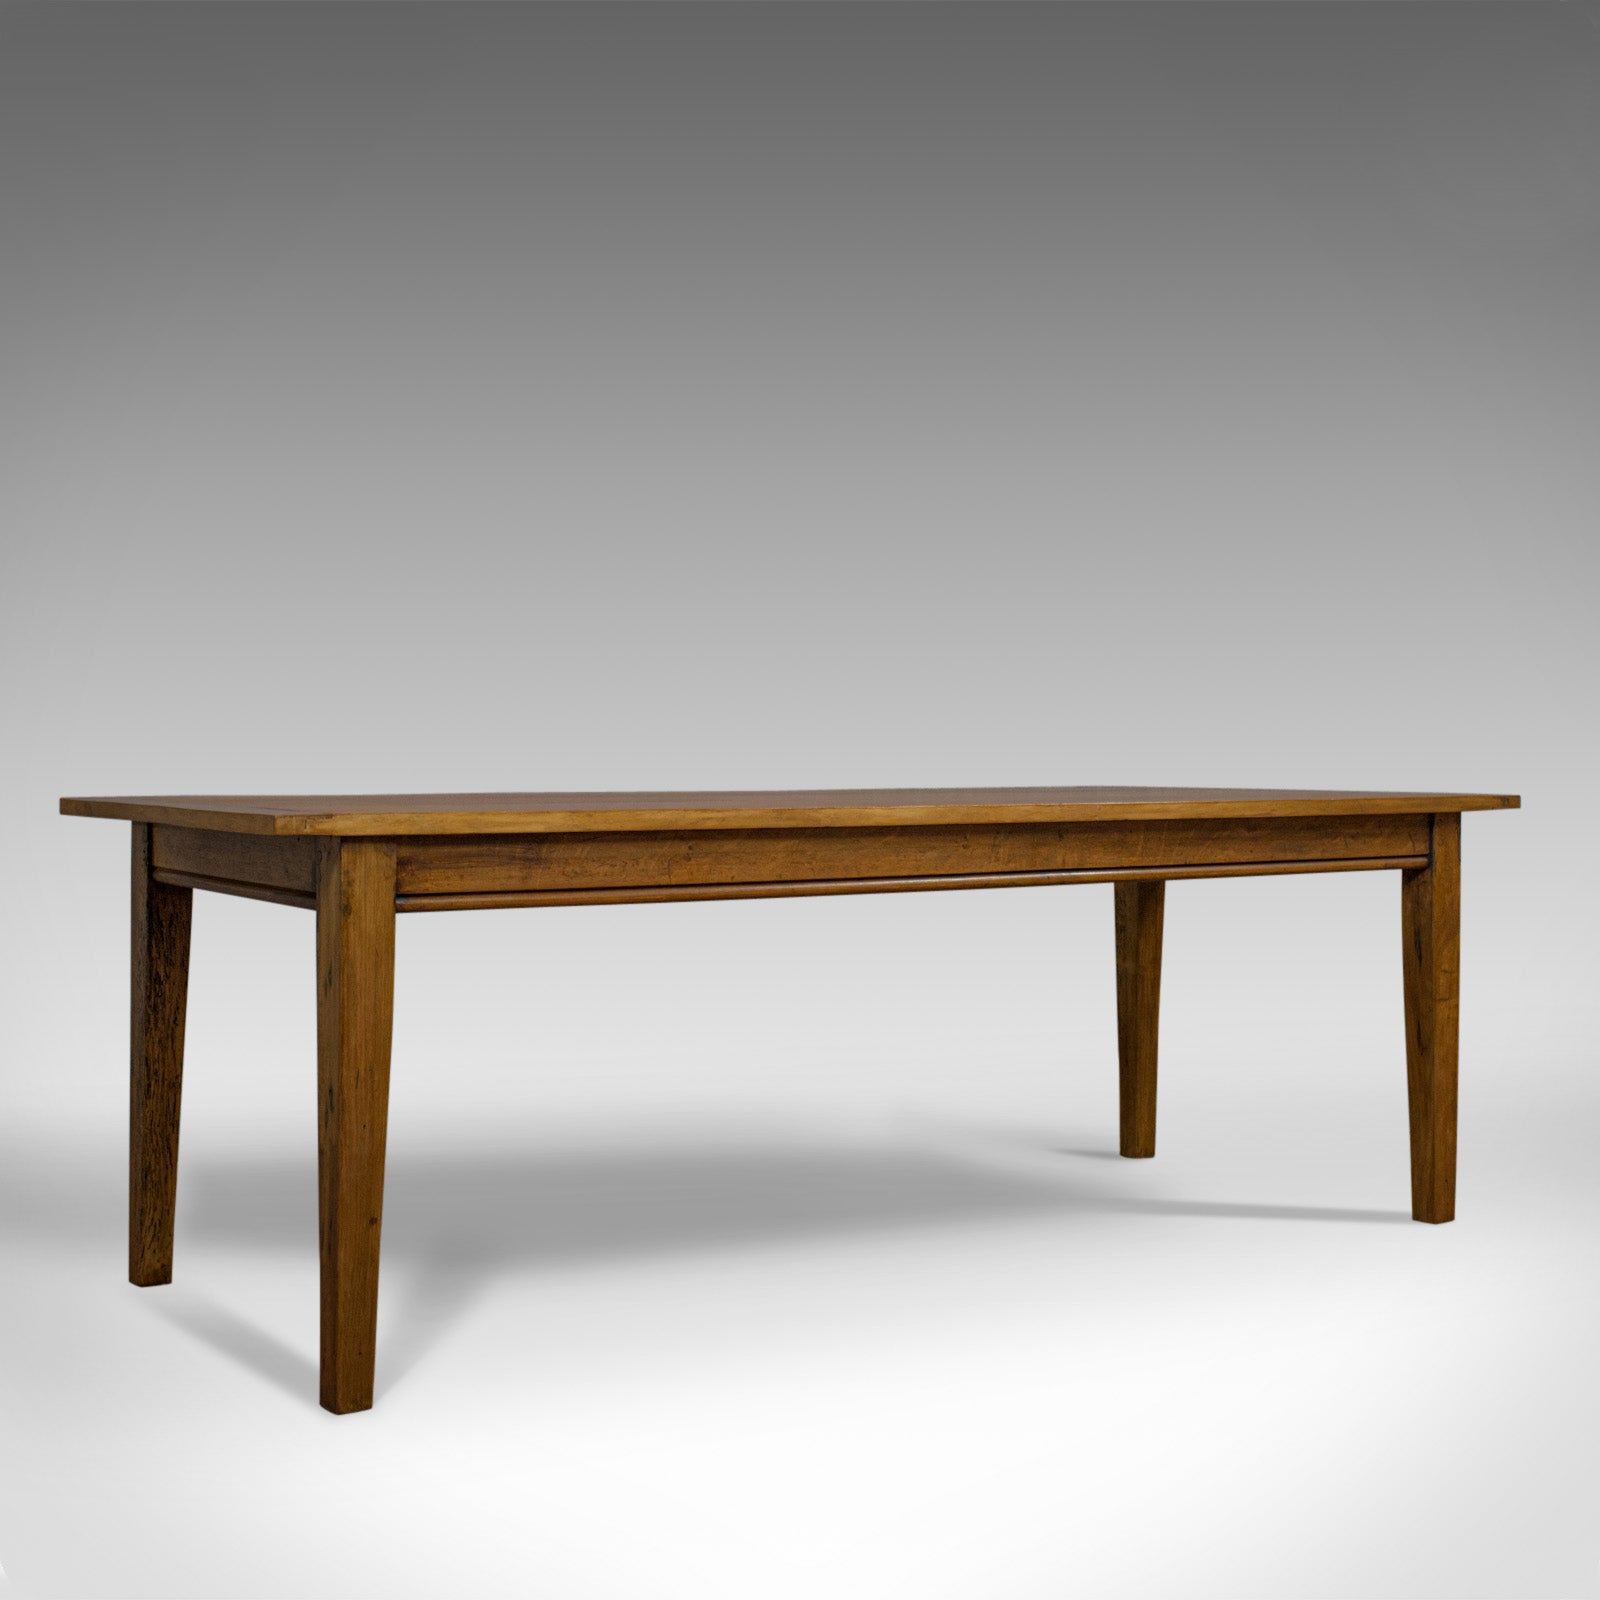 Pleasant Details About Large Antique Dining Table Oak English Victorian Seats Eight Circa 1900 Download Free Architecture Designs Pushbritishbridgeorg